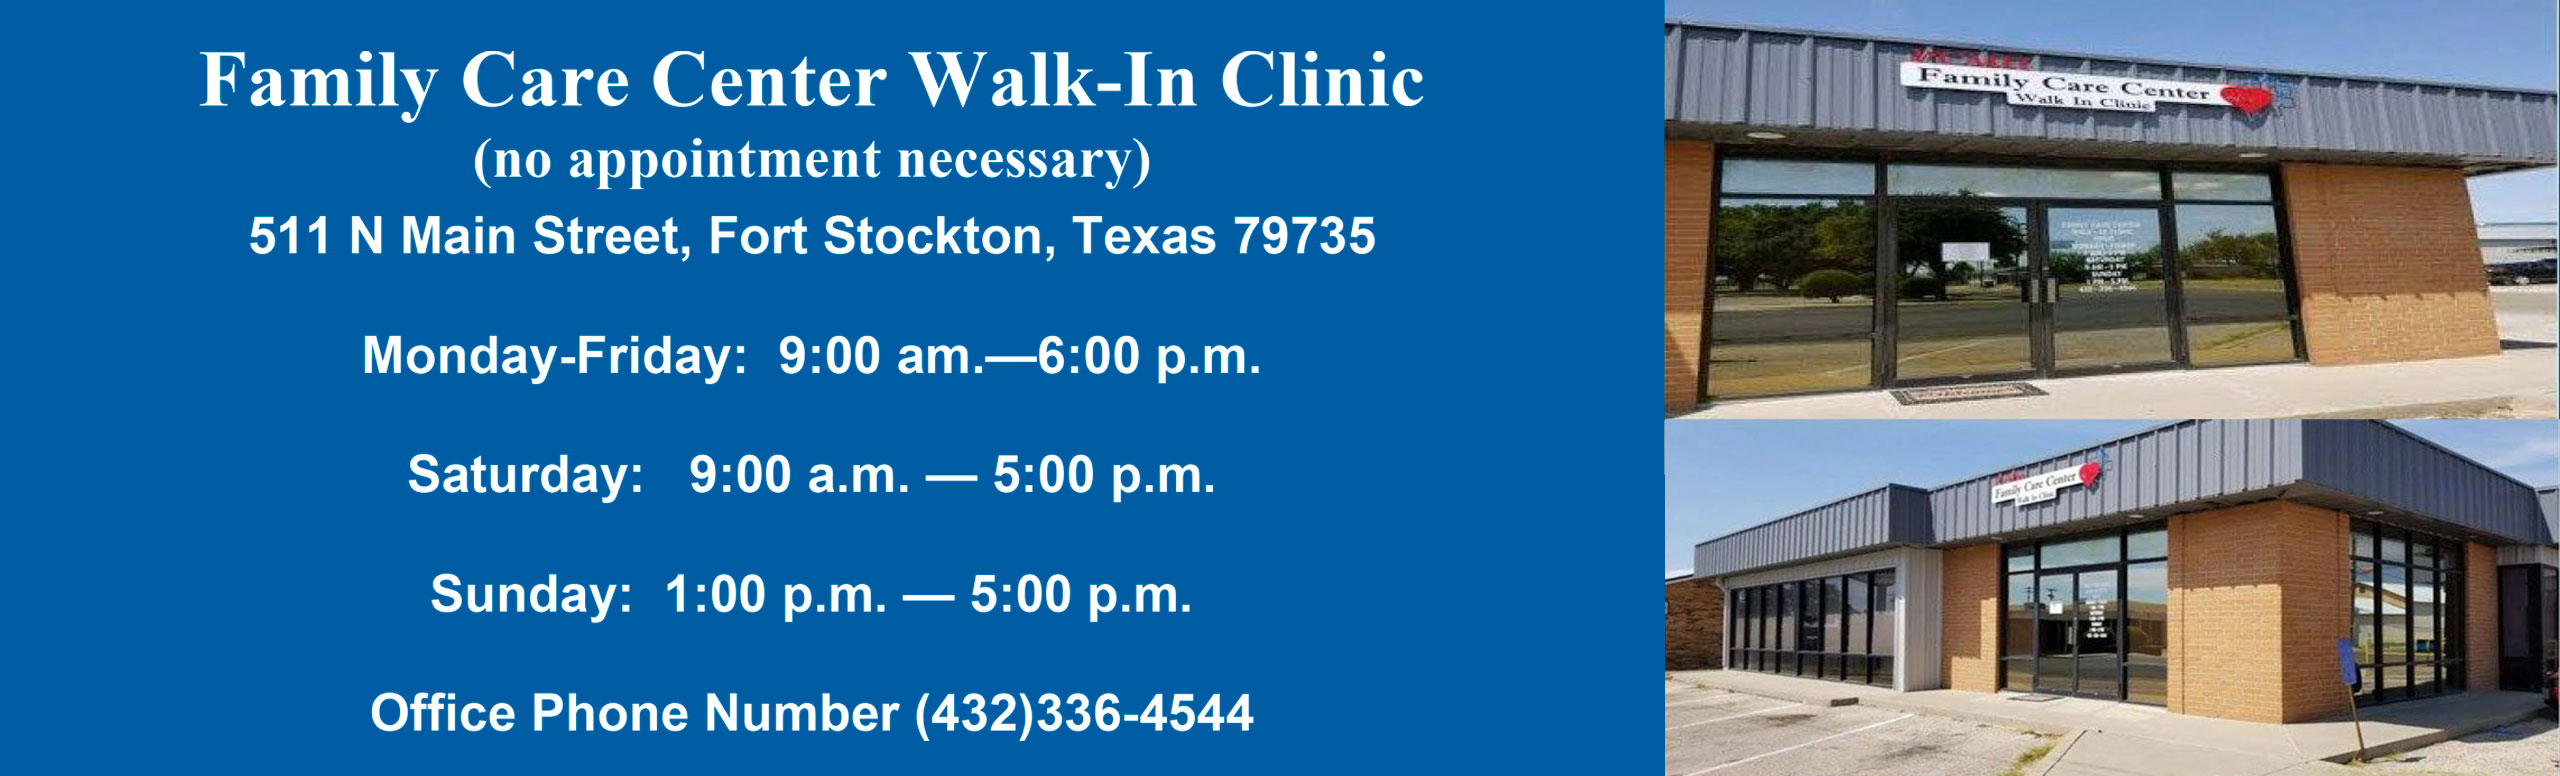 Family Care Center Walk-In Clinic (no appointment necessary) 511 N. Main Street, Fort Stockton, Texas 79735 Monday-Friday: 9:00am-6:00pm Saturday: 9:00am-5:00pm Sunday: 1:00pm-5:00pm Office Phone Number (432) 336-4544